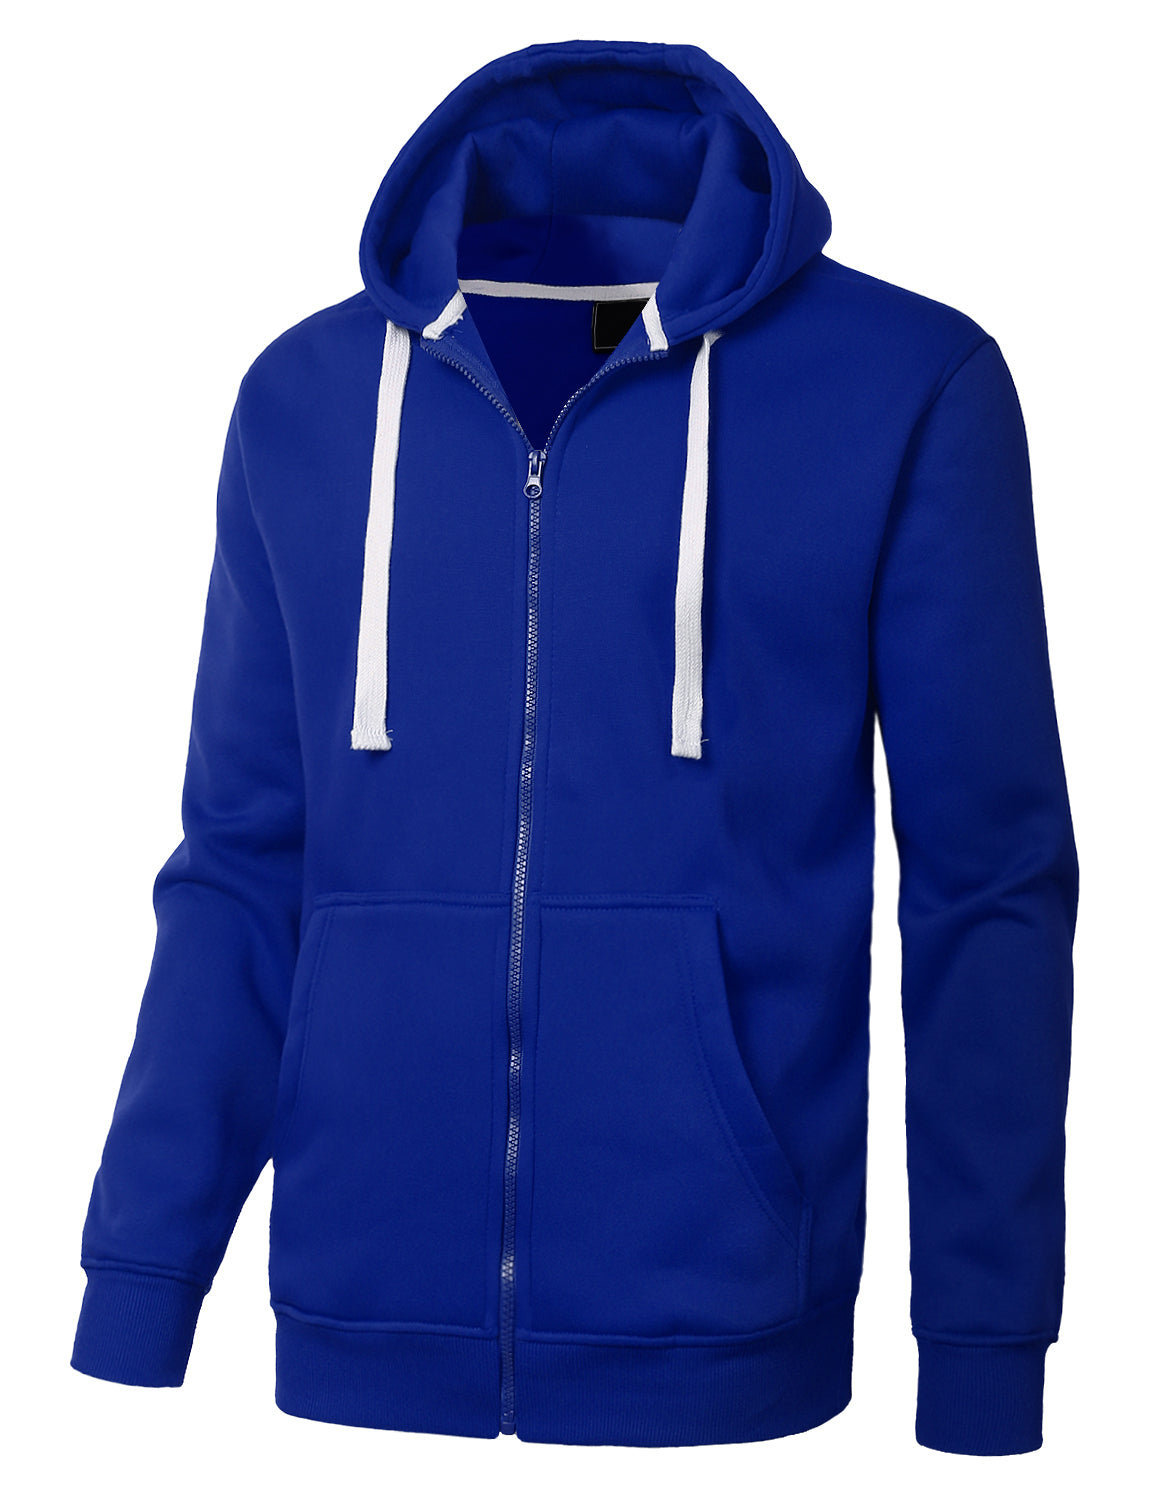 ROYAL Basic Zip-Up Fleece Hoodie Jacket - URBANCREWS